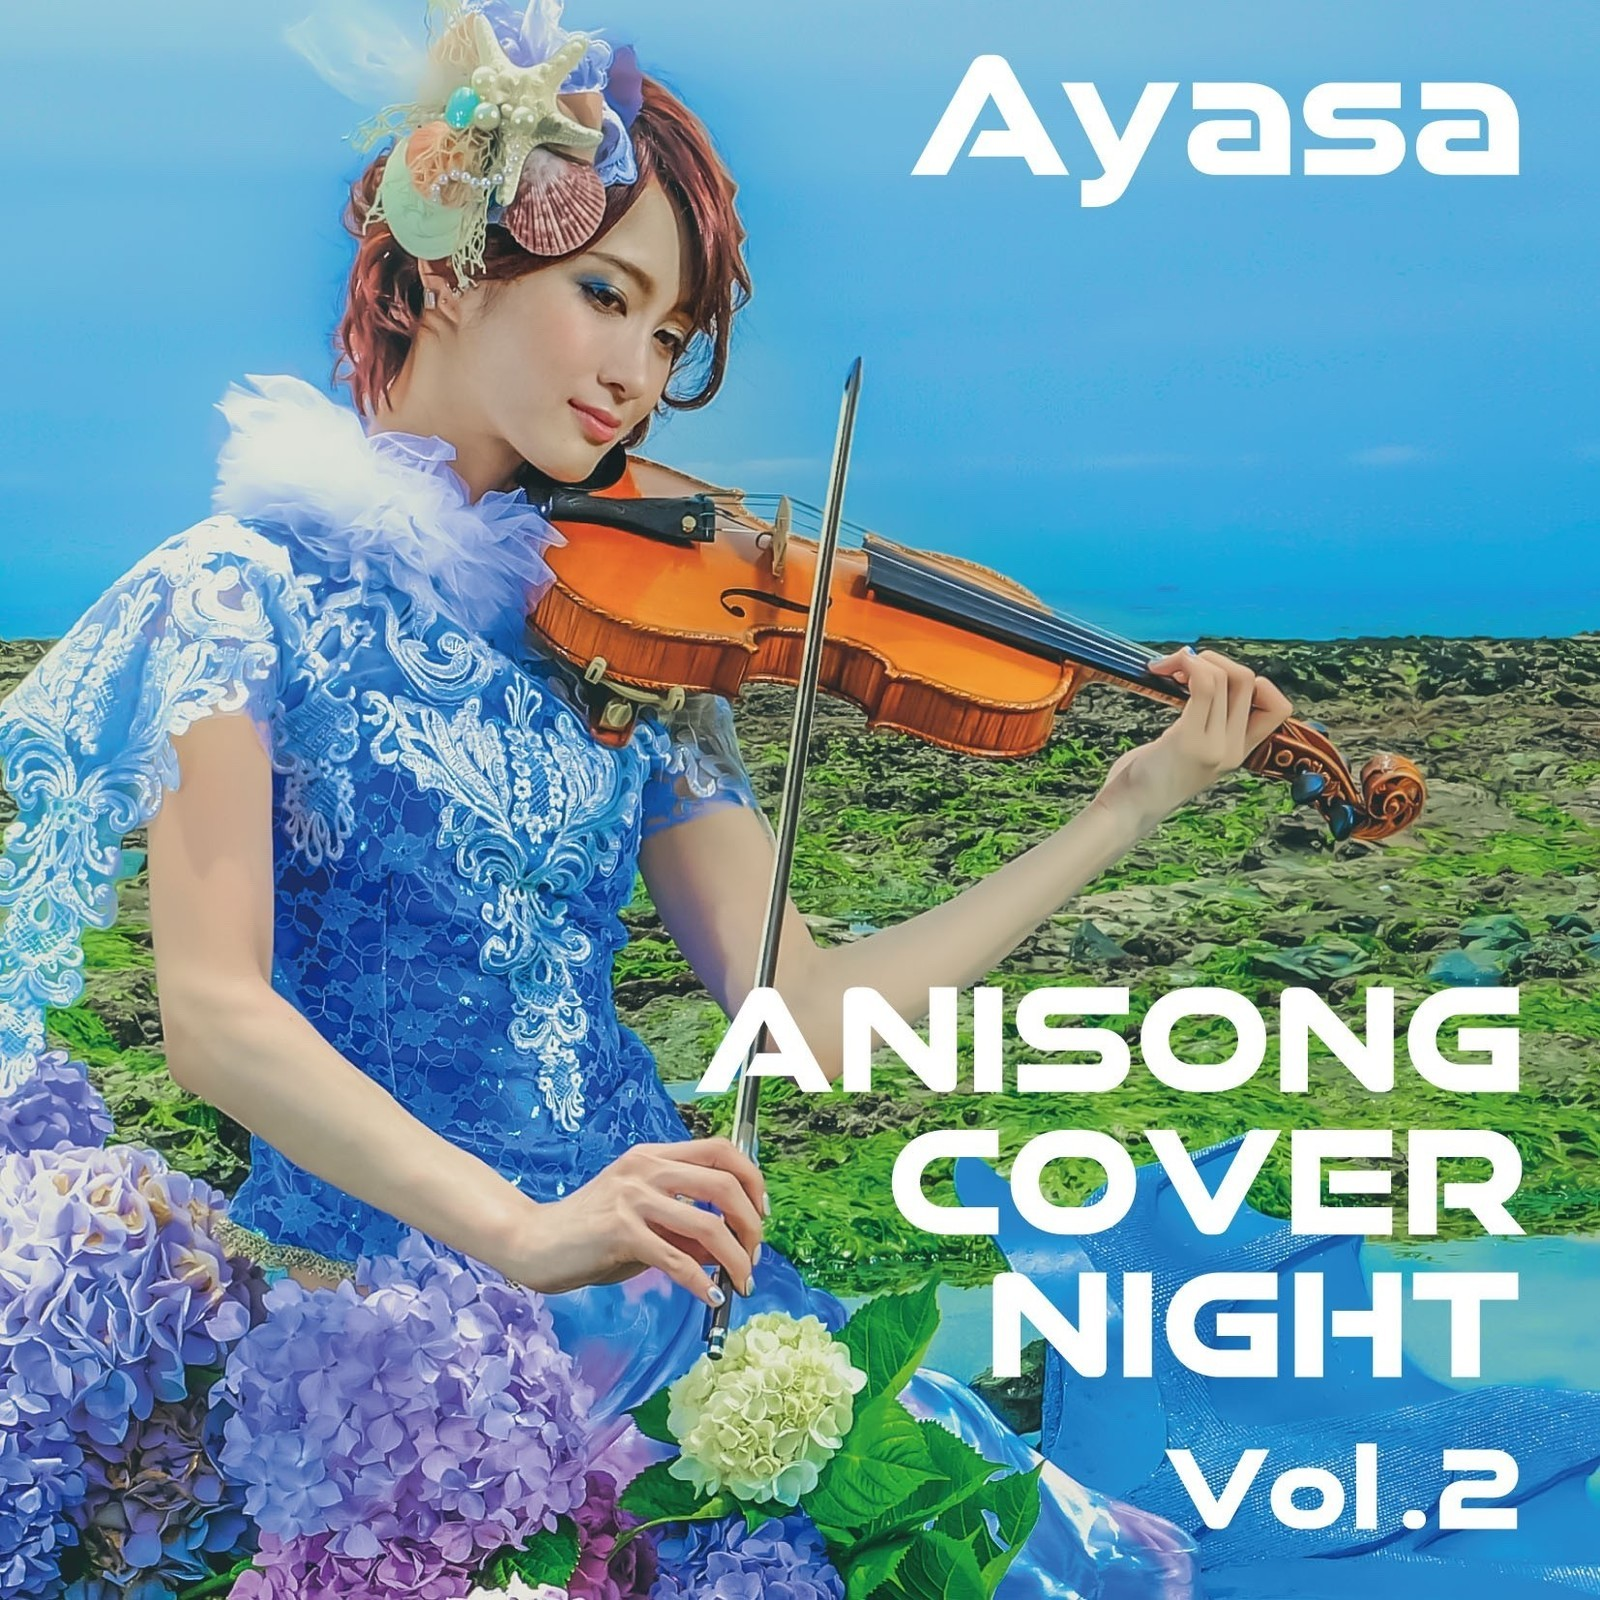 Ayasa – ANISON COVER NIGHT Vol.2 [24bit Lossless + MP3 320] [2019.10.02]